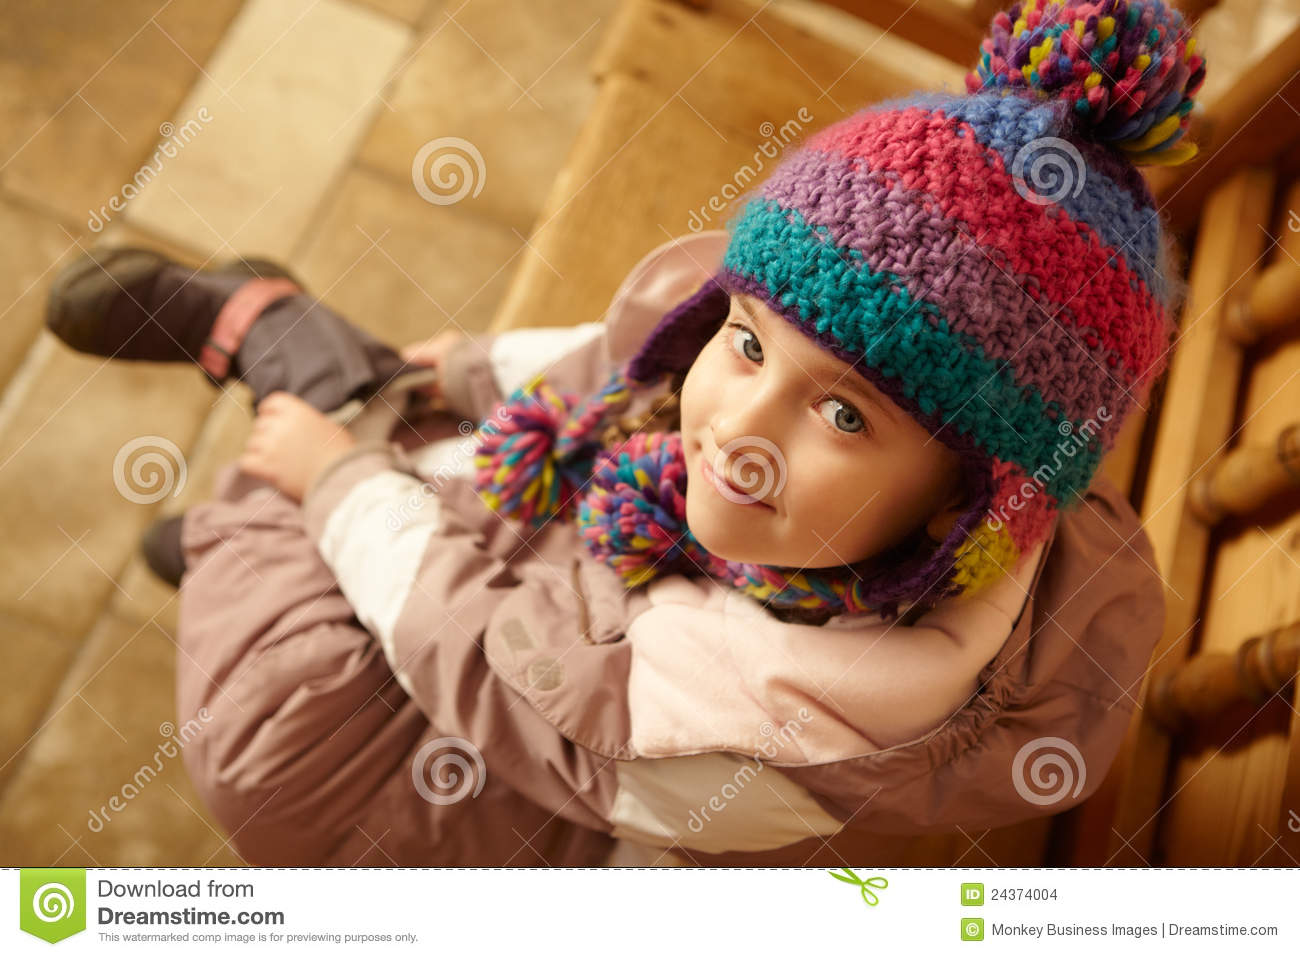 Aerial View Of Young Girl Sitting On Wooden Seat